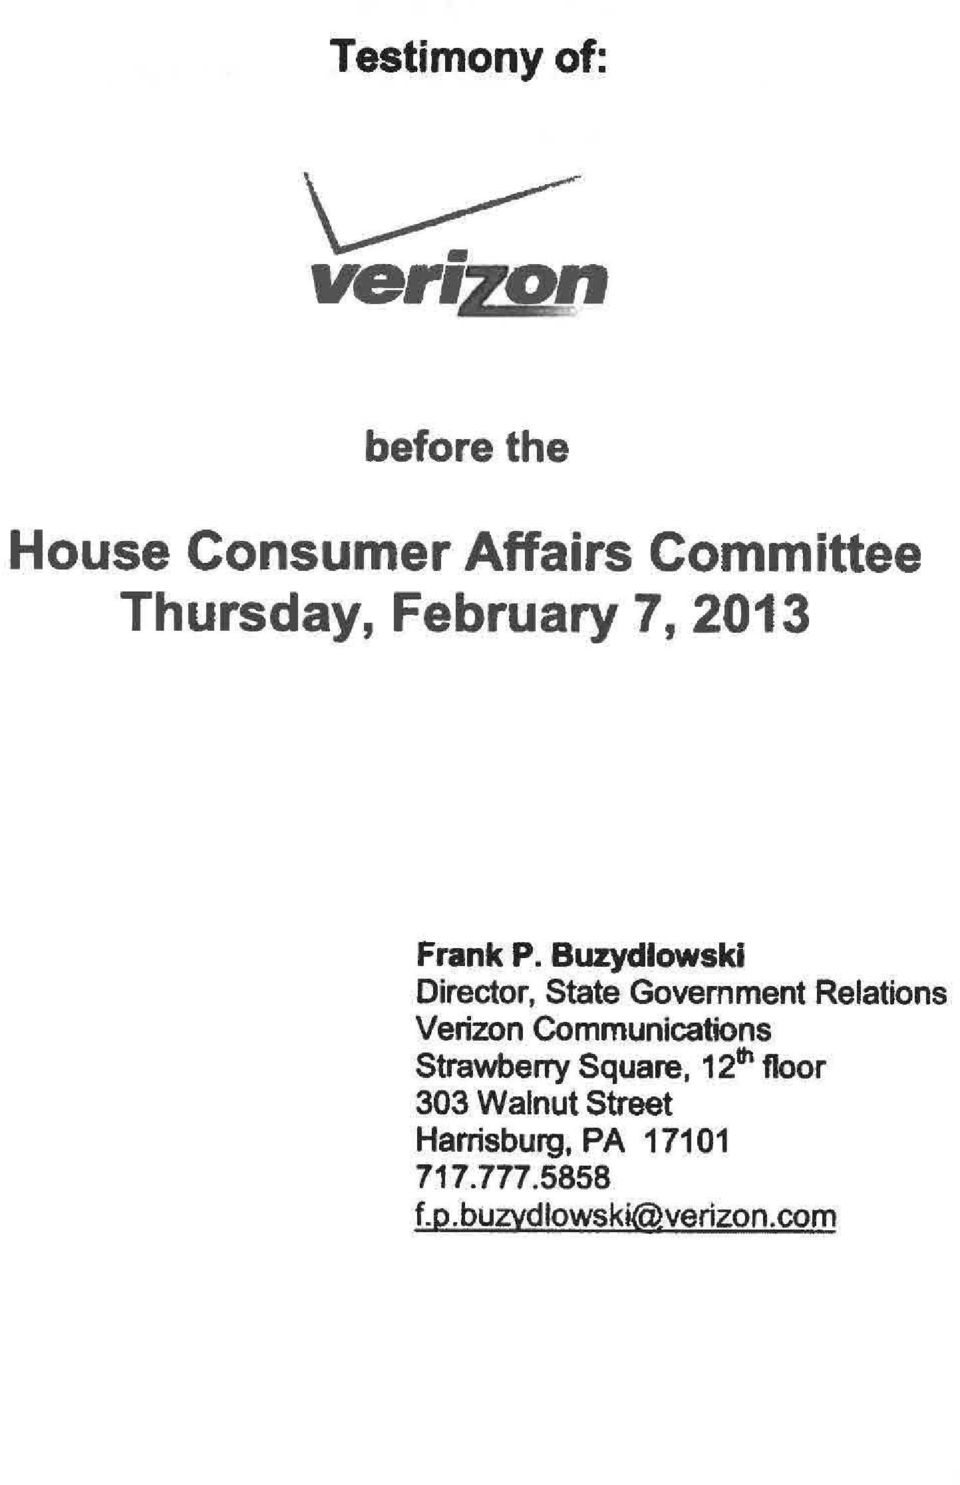 Buzydlowski Director, State Government Relations Verizon Communications